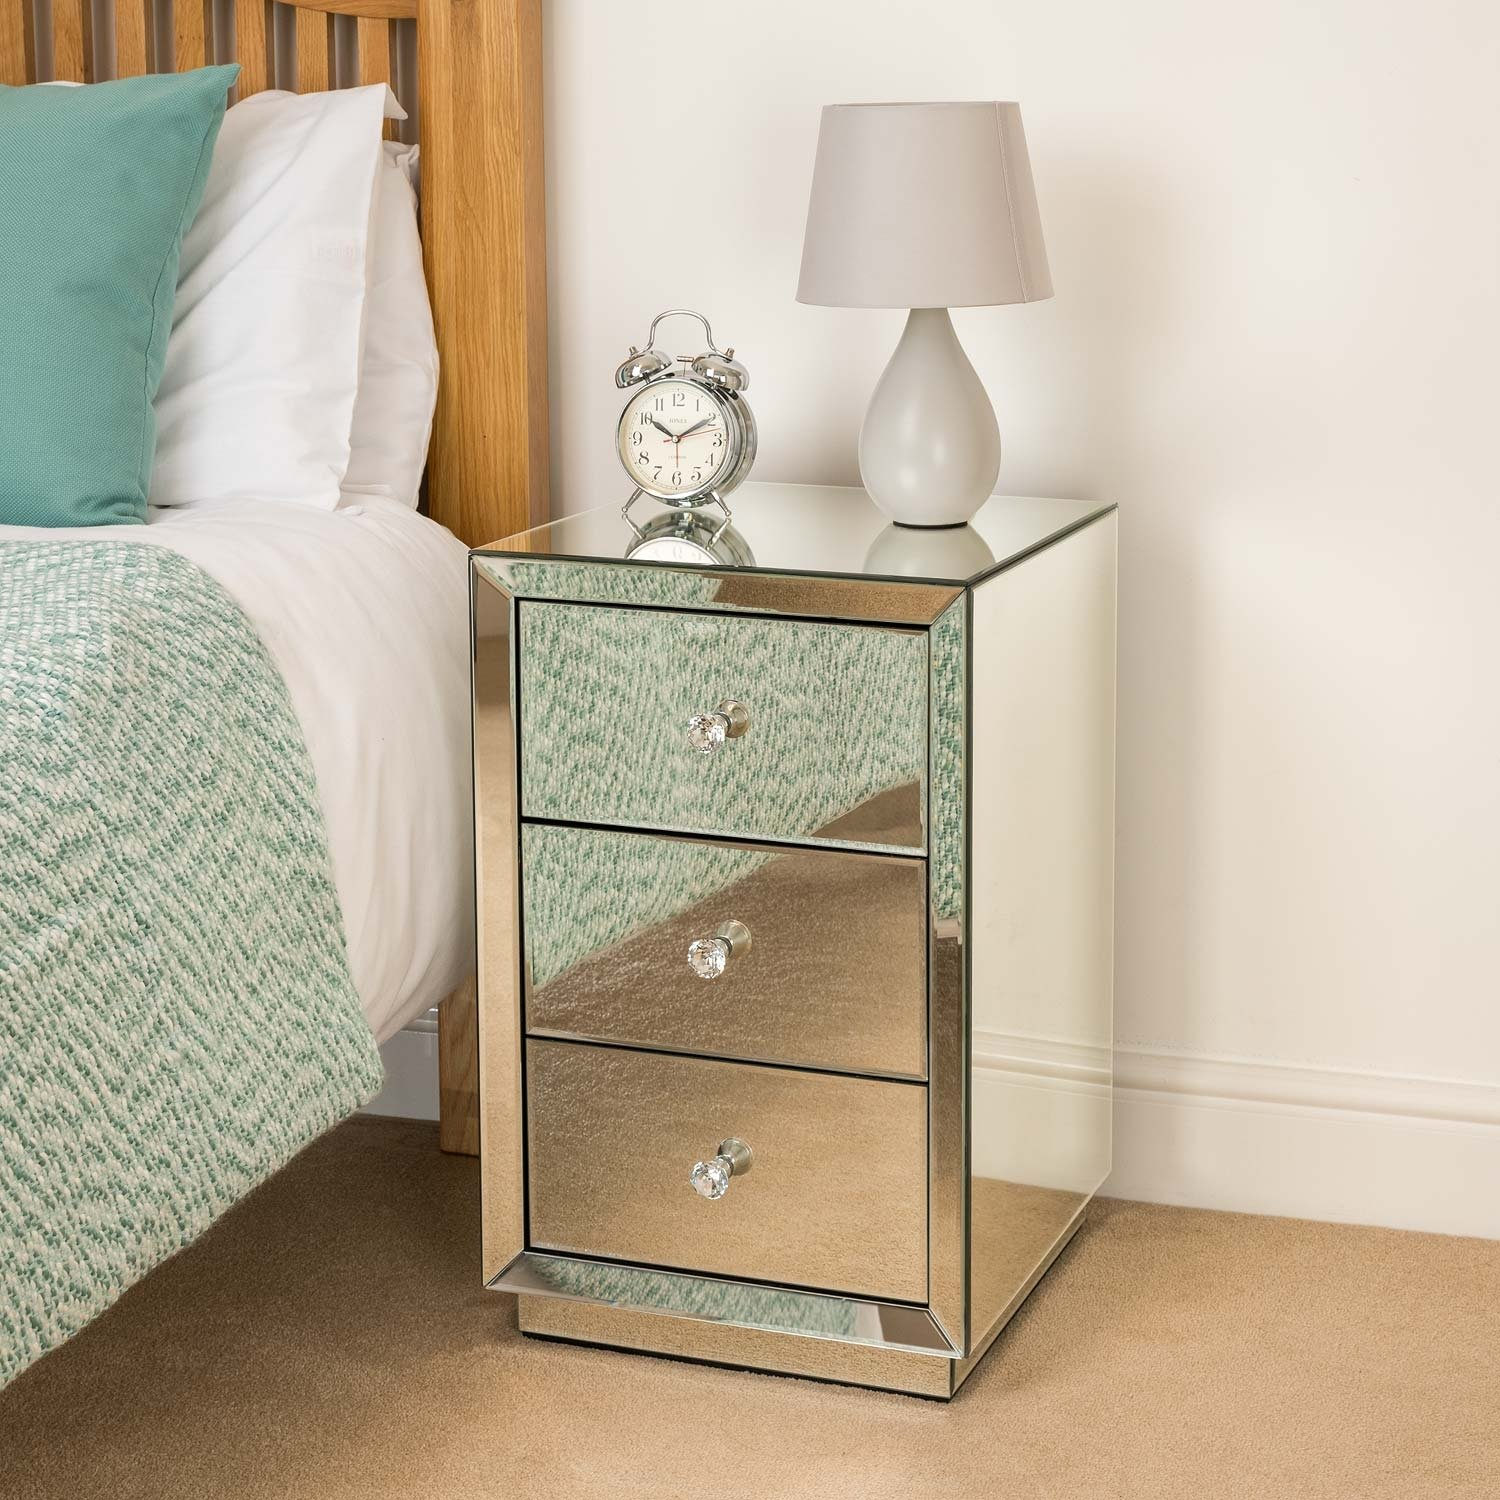 Christow Mirrored Glass Bedside Table 3 Drawer Bedroom Cabinet Stand Furniture